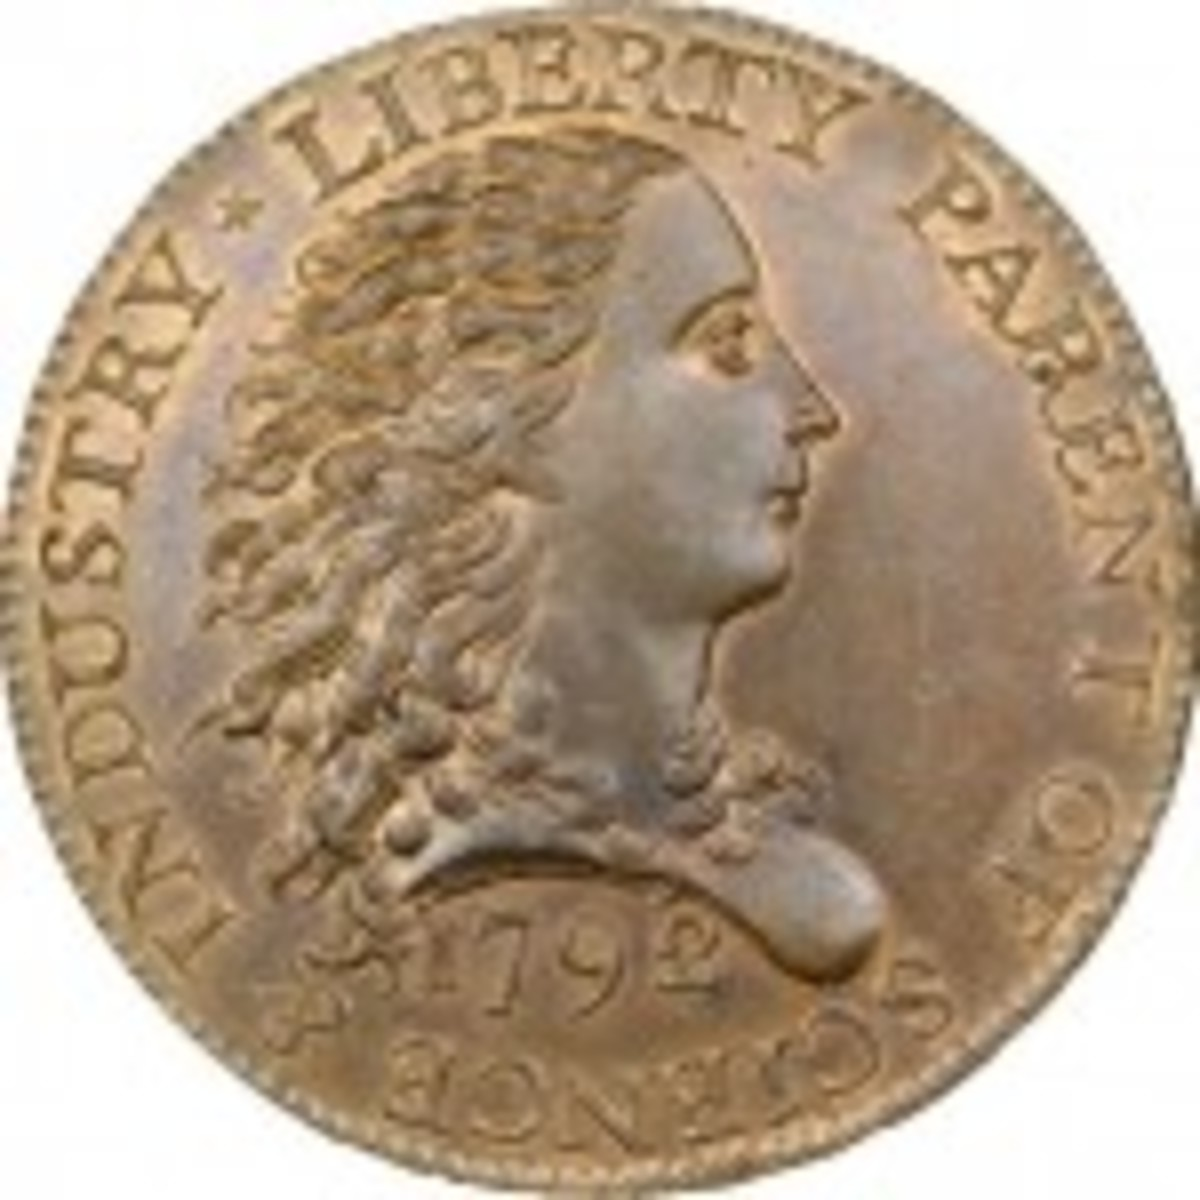 Colonial coin1